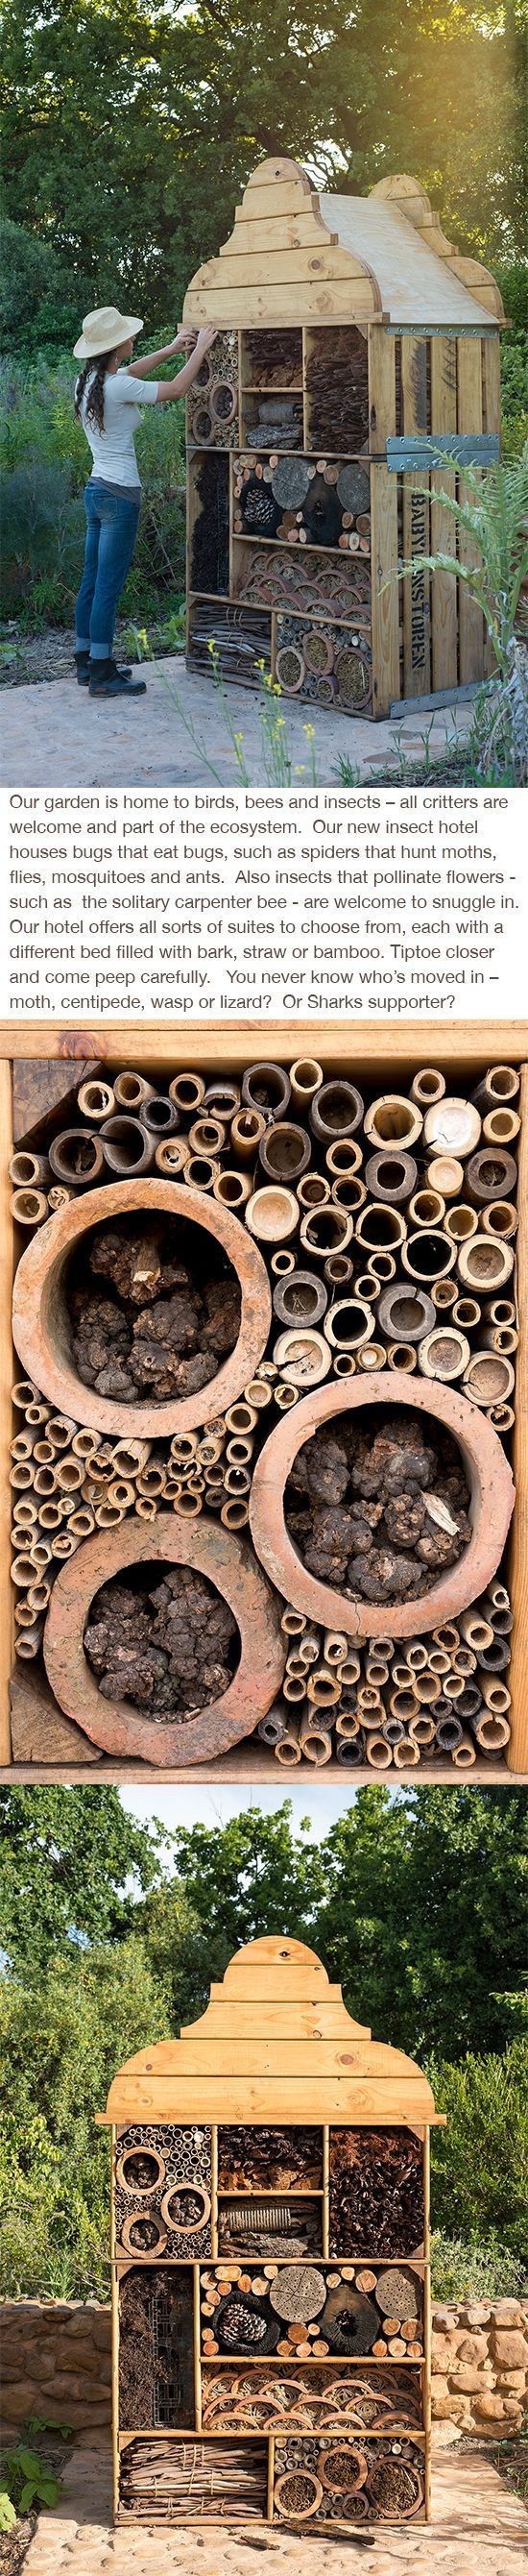 Insect birds & bee hotel for garden to improve the ecosystem in your yard!